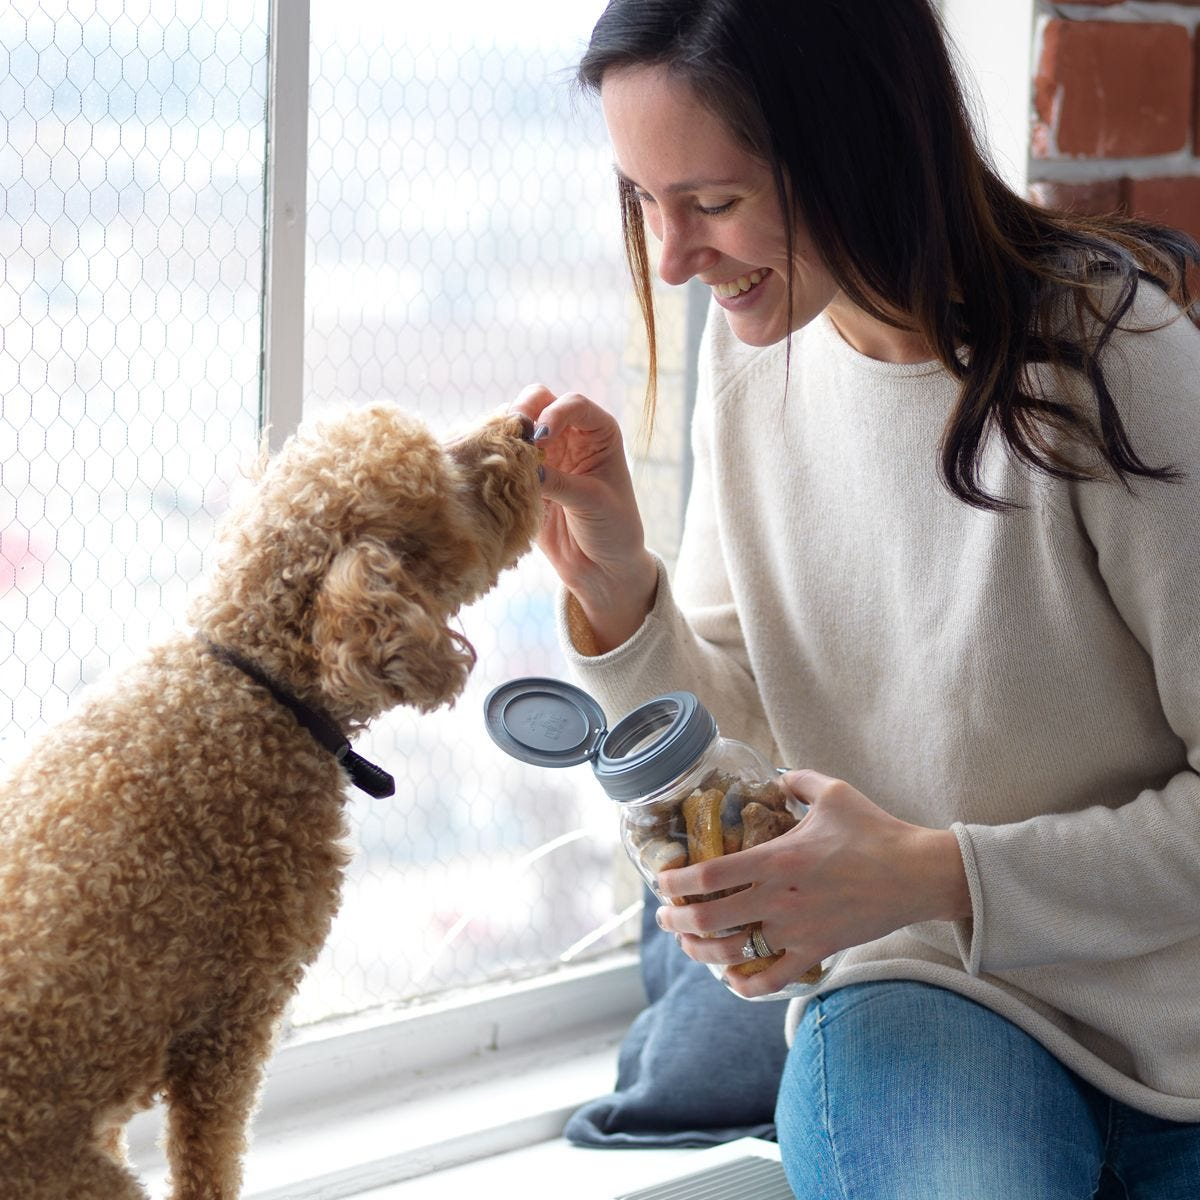 Mason Jar DIY Pet Care Kits